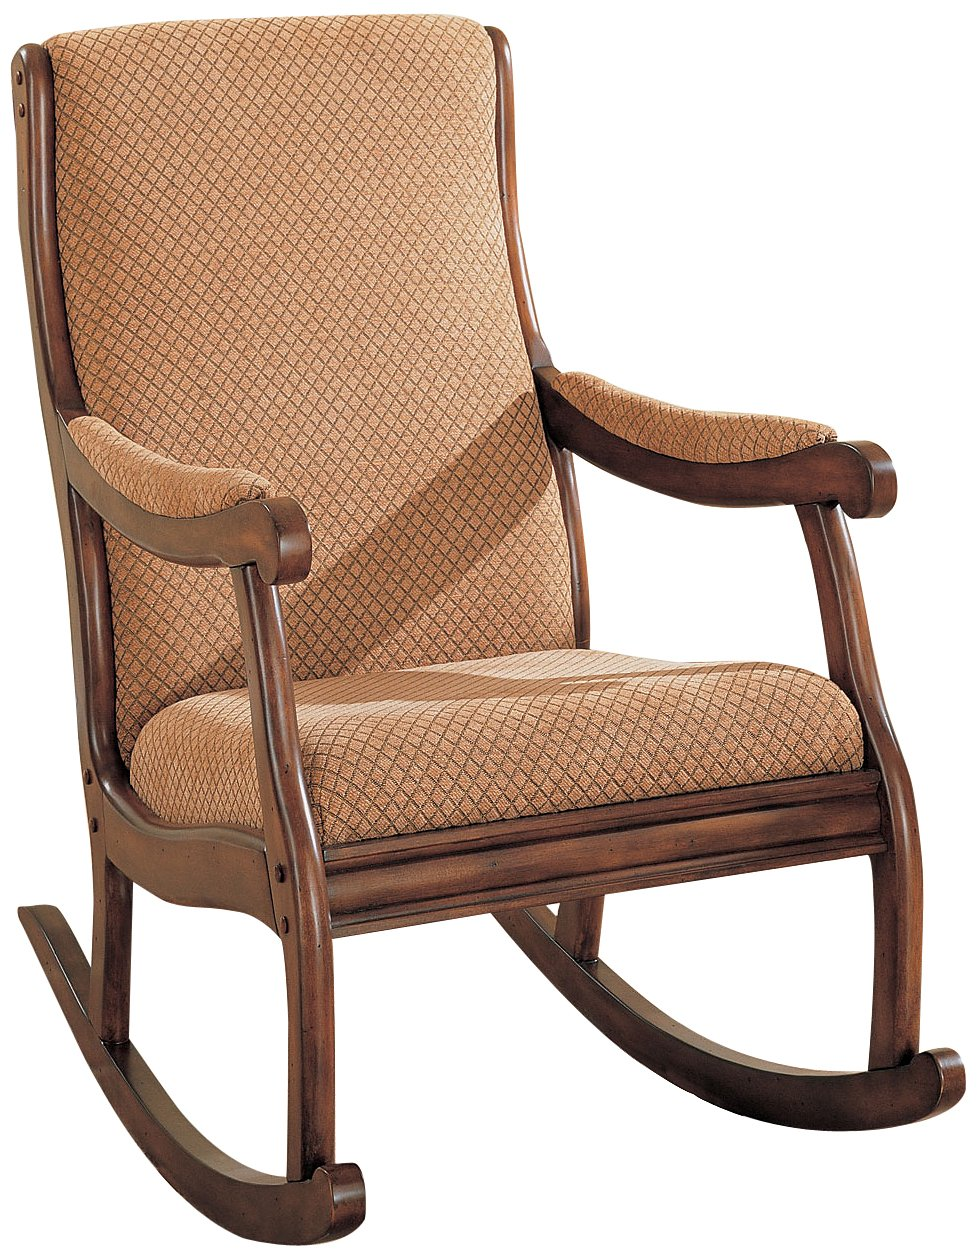 Amazon.com: Rocking Chairs: Home & Kitchen